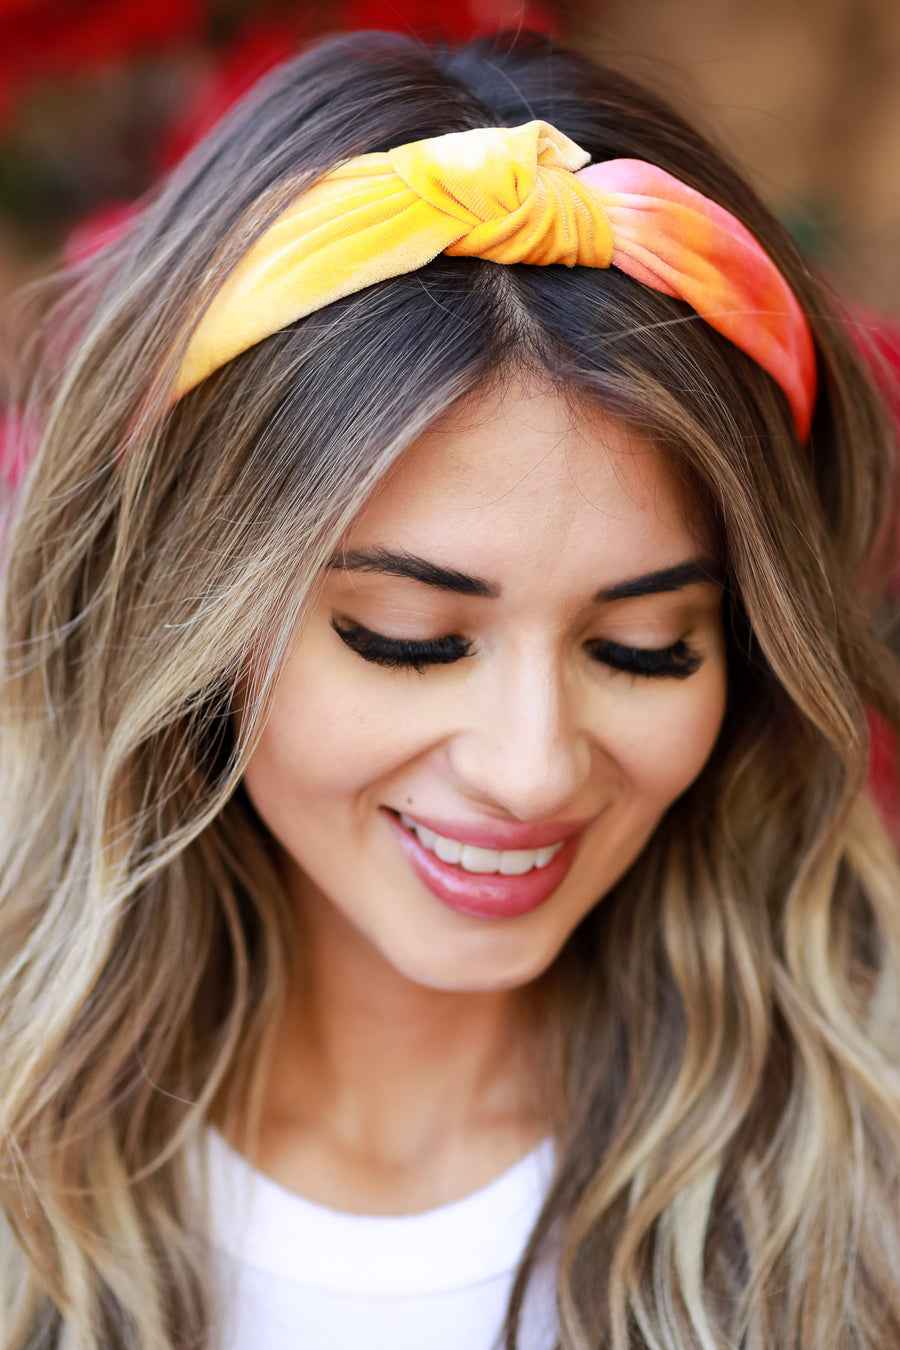 Holly Tie Dye Headband - Pink & Orange womens trendy tie dye top knot velvet headband closet candy front